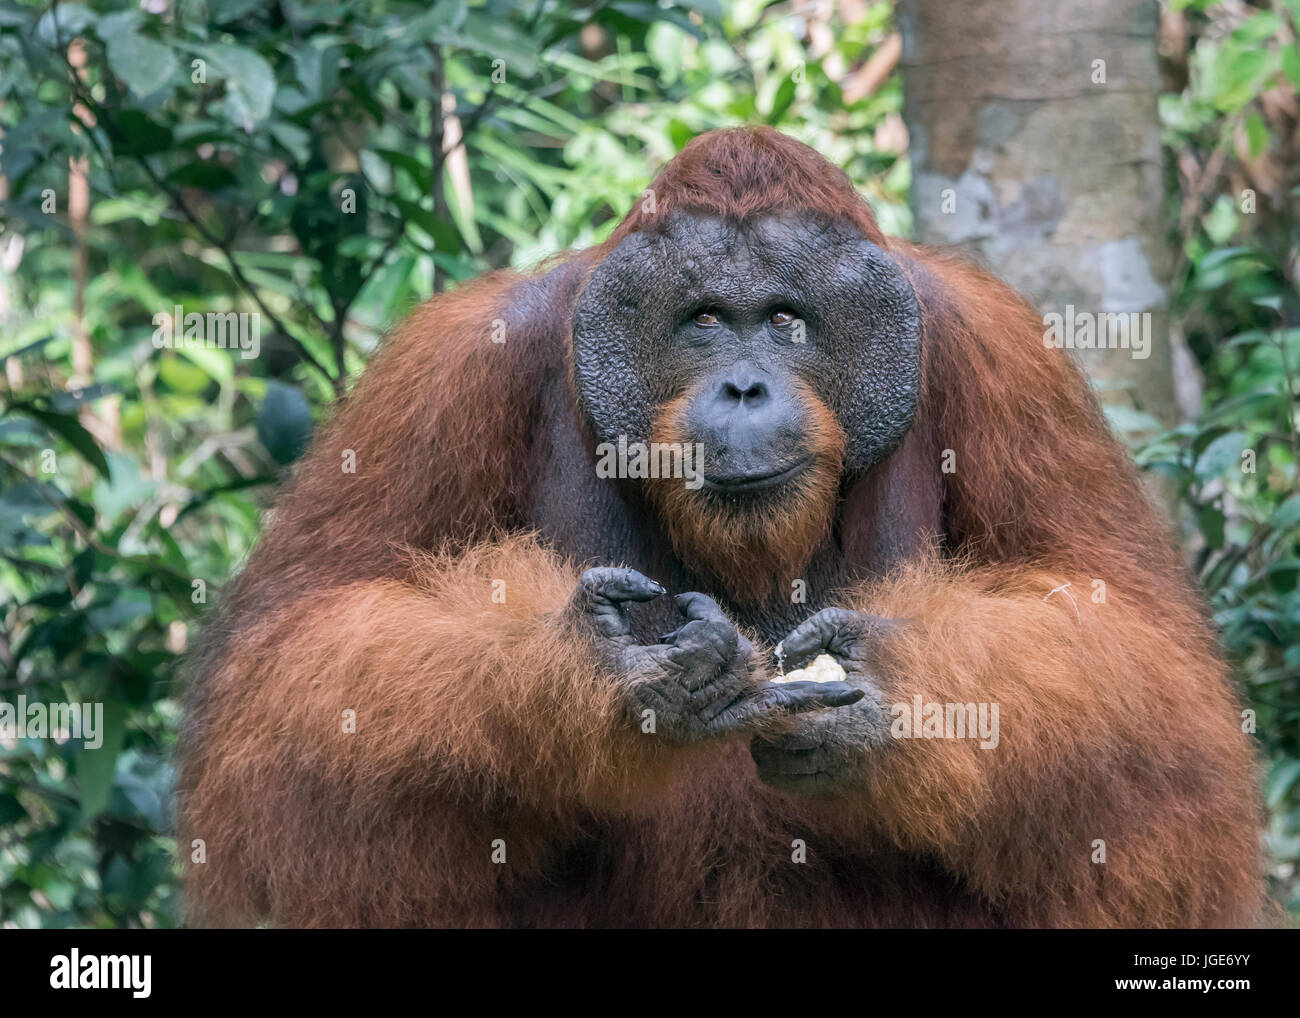 Flanged male orangtan with a mischievous smile, Tanjung Puting National Park, Kalimantan, Indonesia - Stock Image